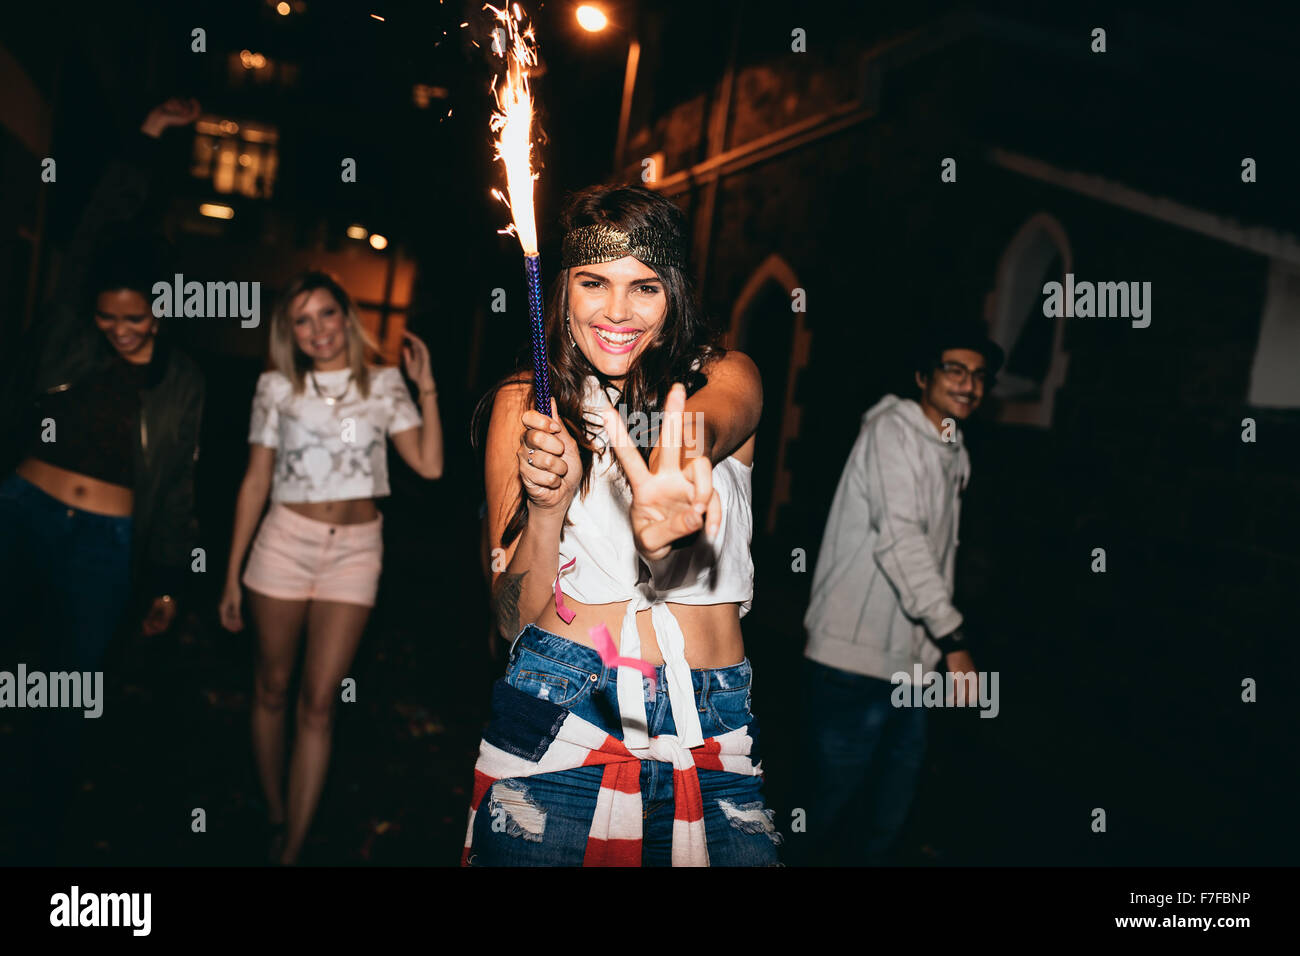 Portrait of cheerful young woman holding a sparkler and showing victory sign. Young people celebrating 4th of july - Stock Image